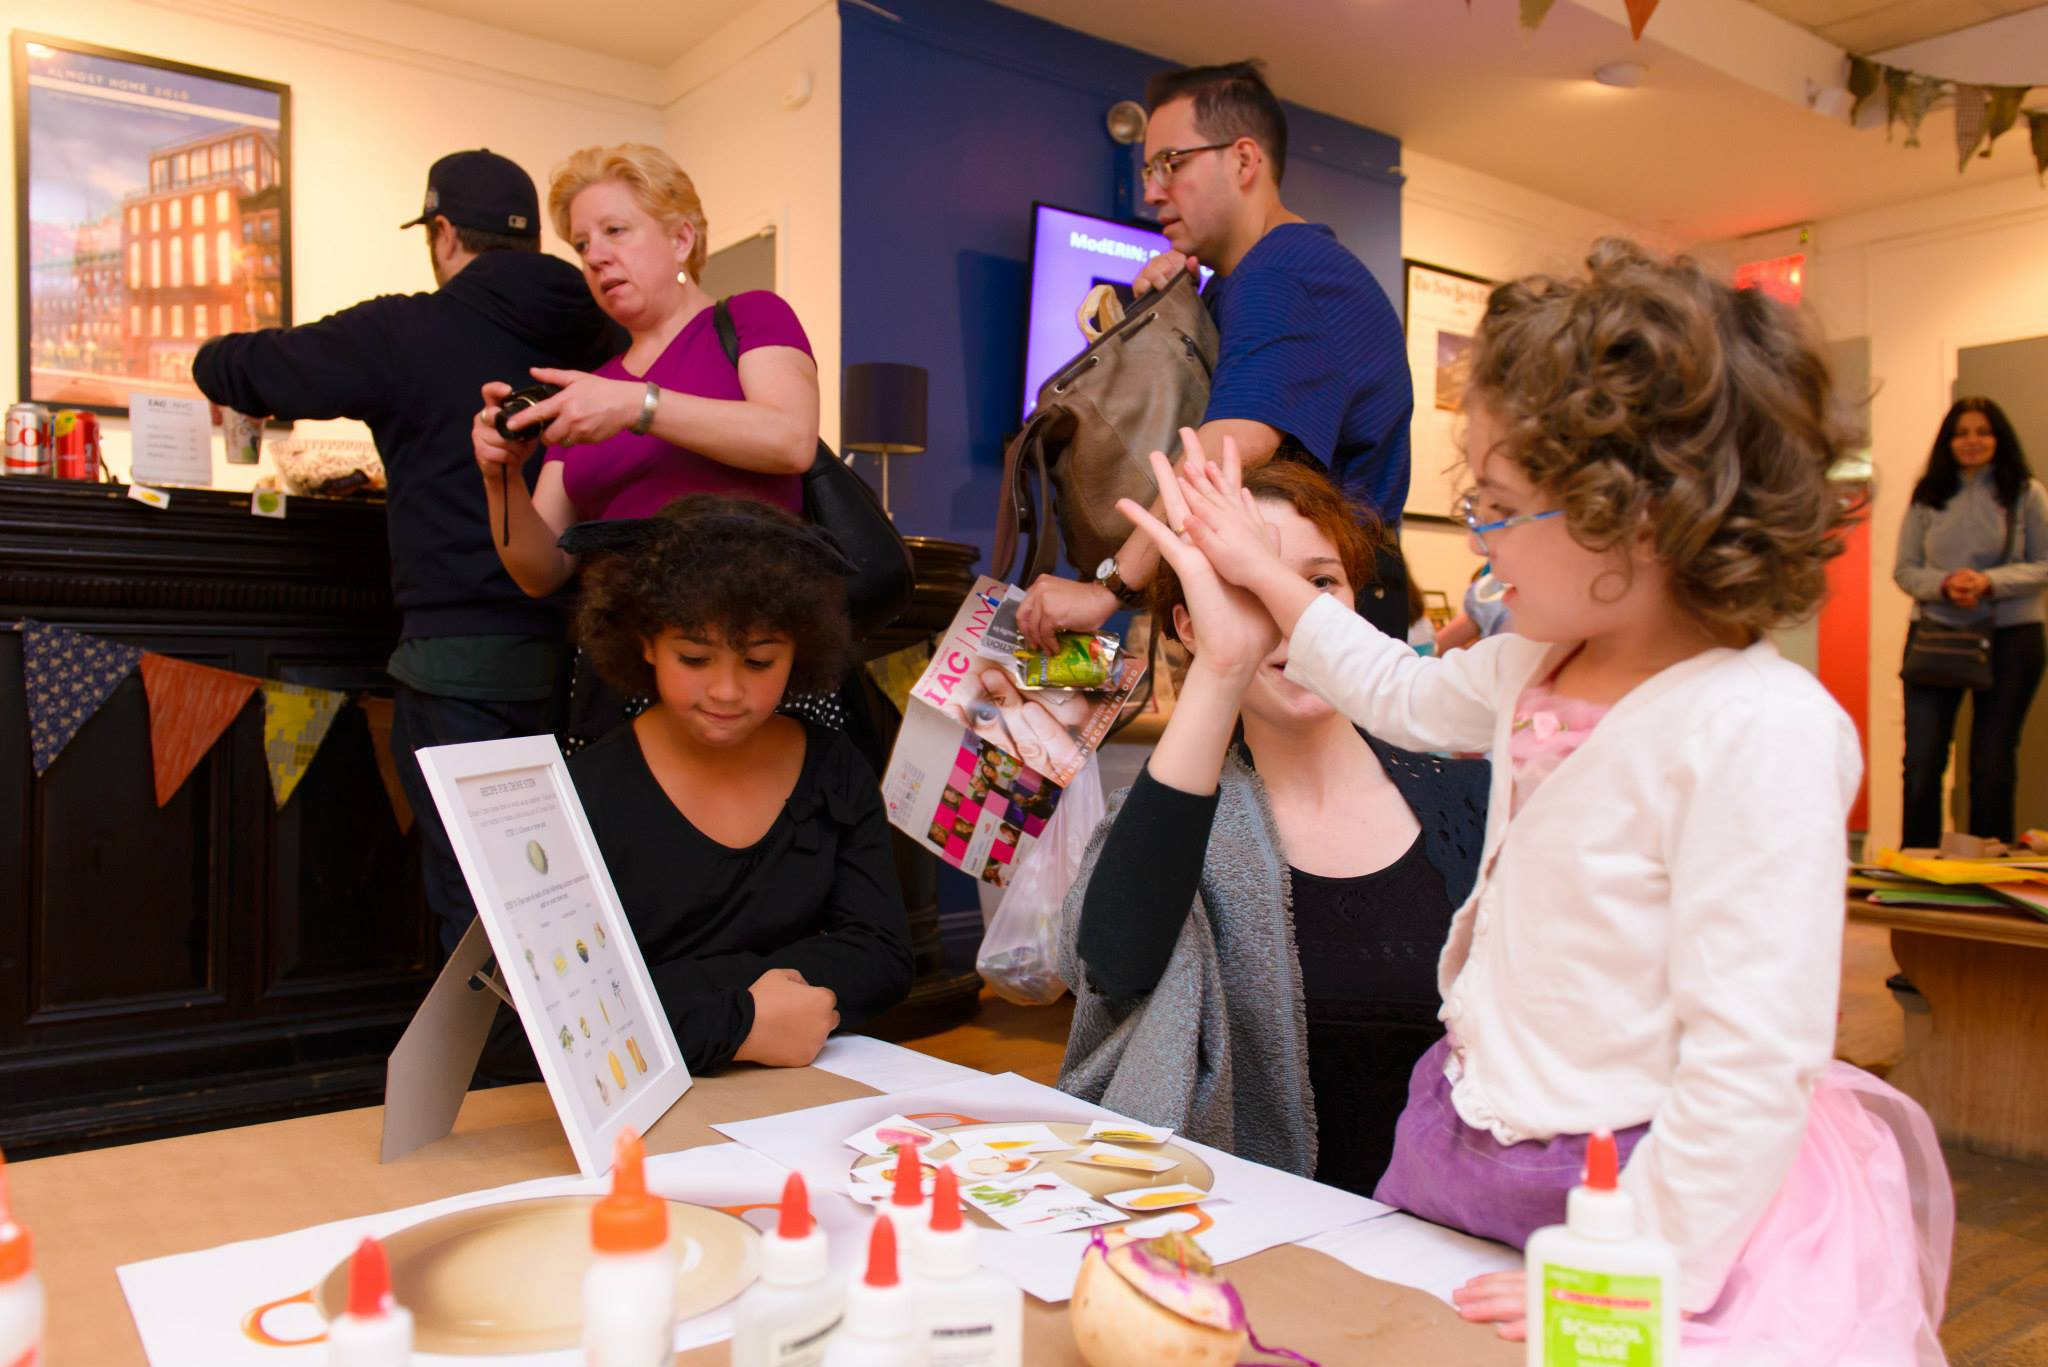 Leading arts and crafts activities at our Halloween event